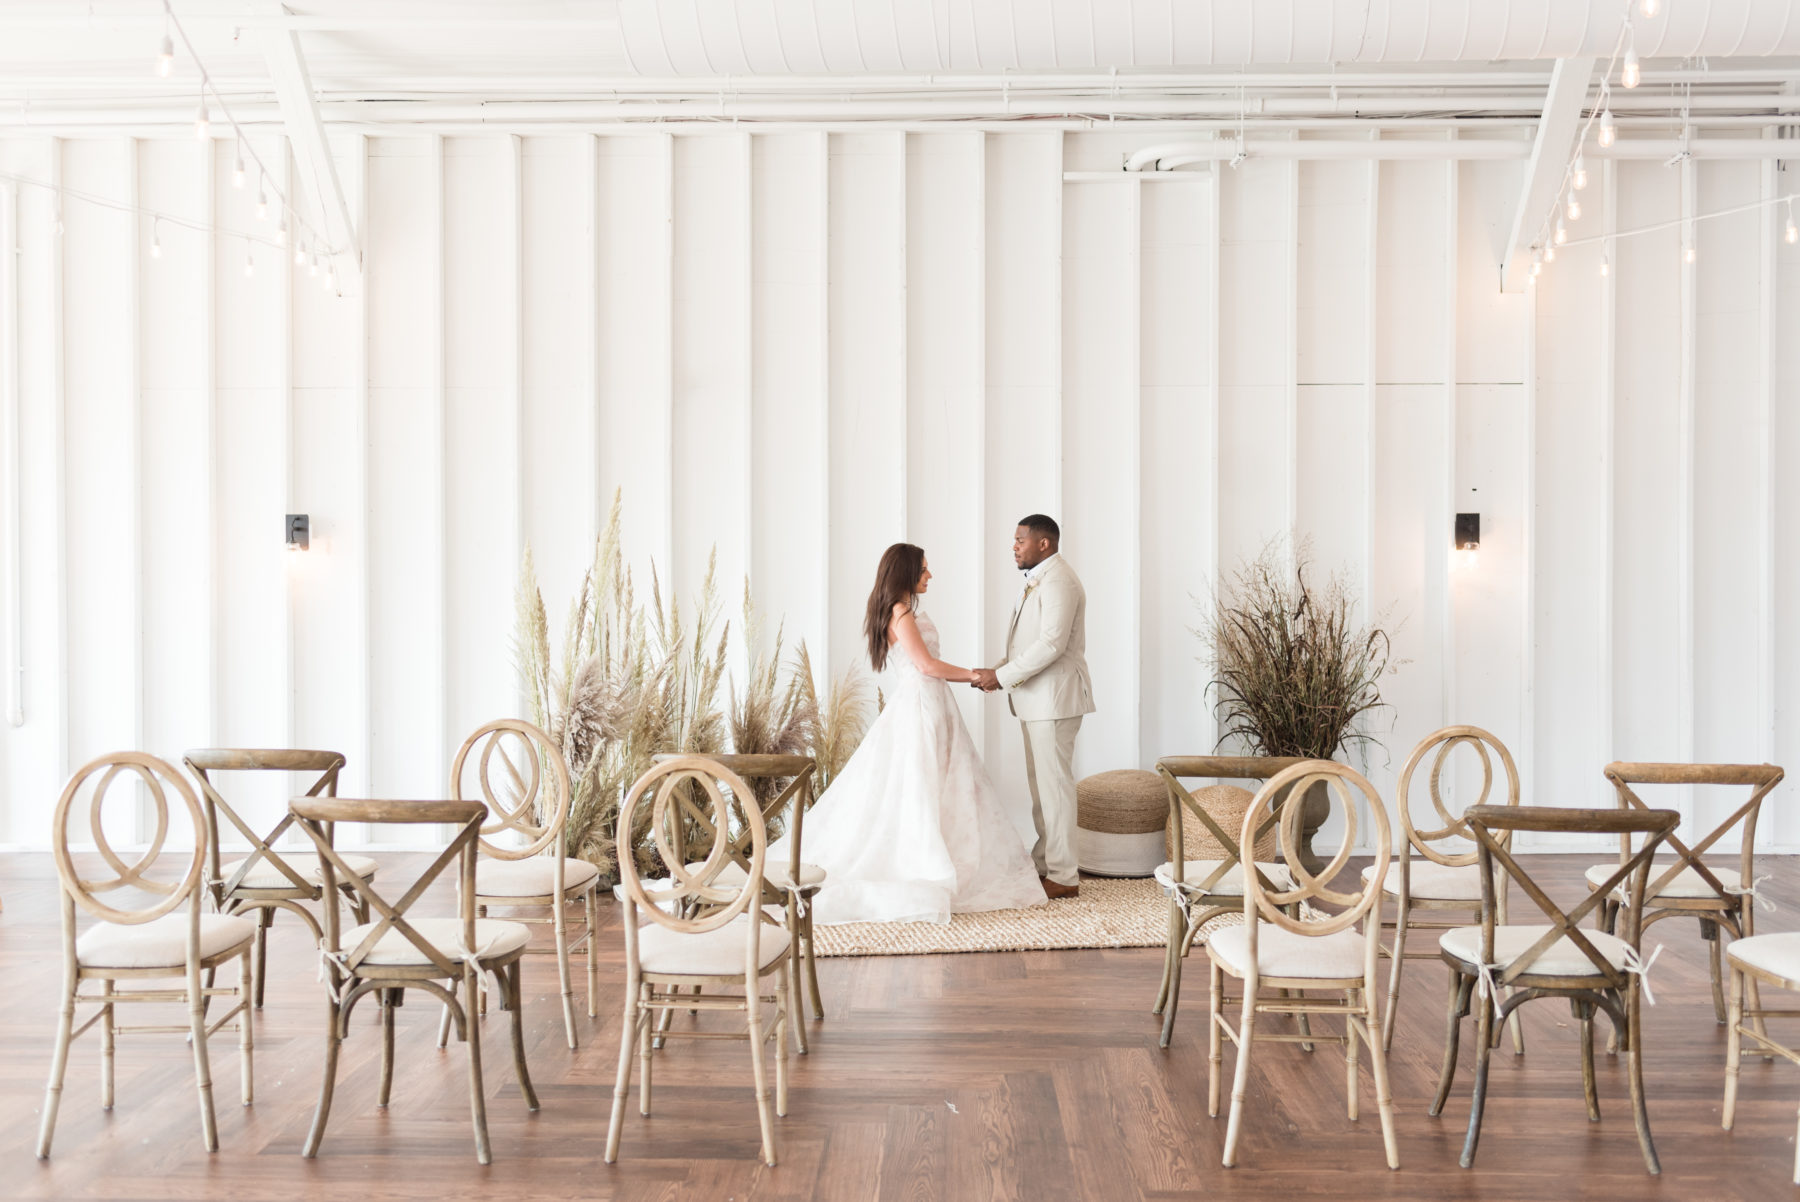 Simple Wedding Ceremony Decor: Organic Eco-Friendly Wedding Styled Shoot featured on Nashville Bride Guide